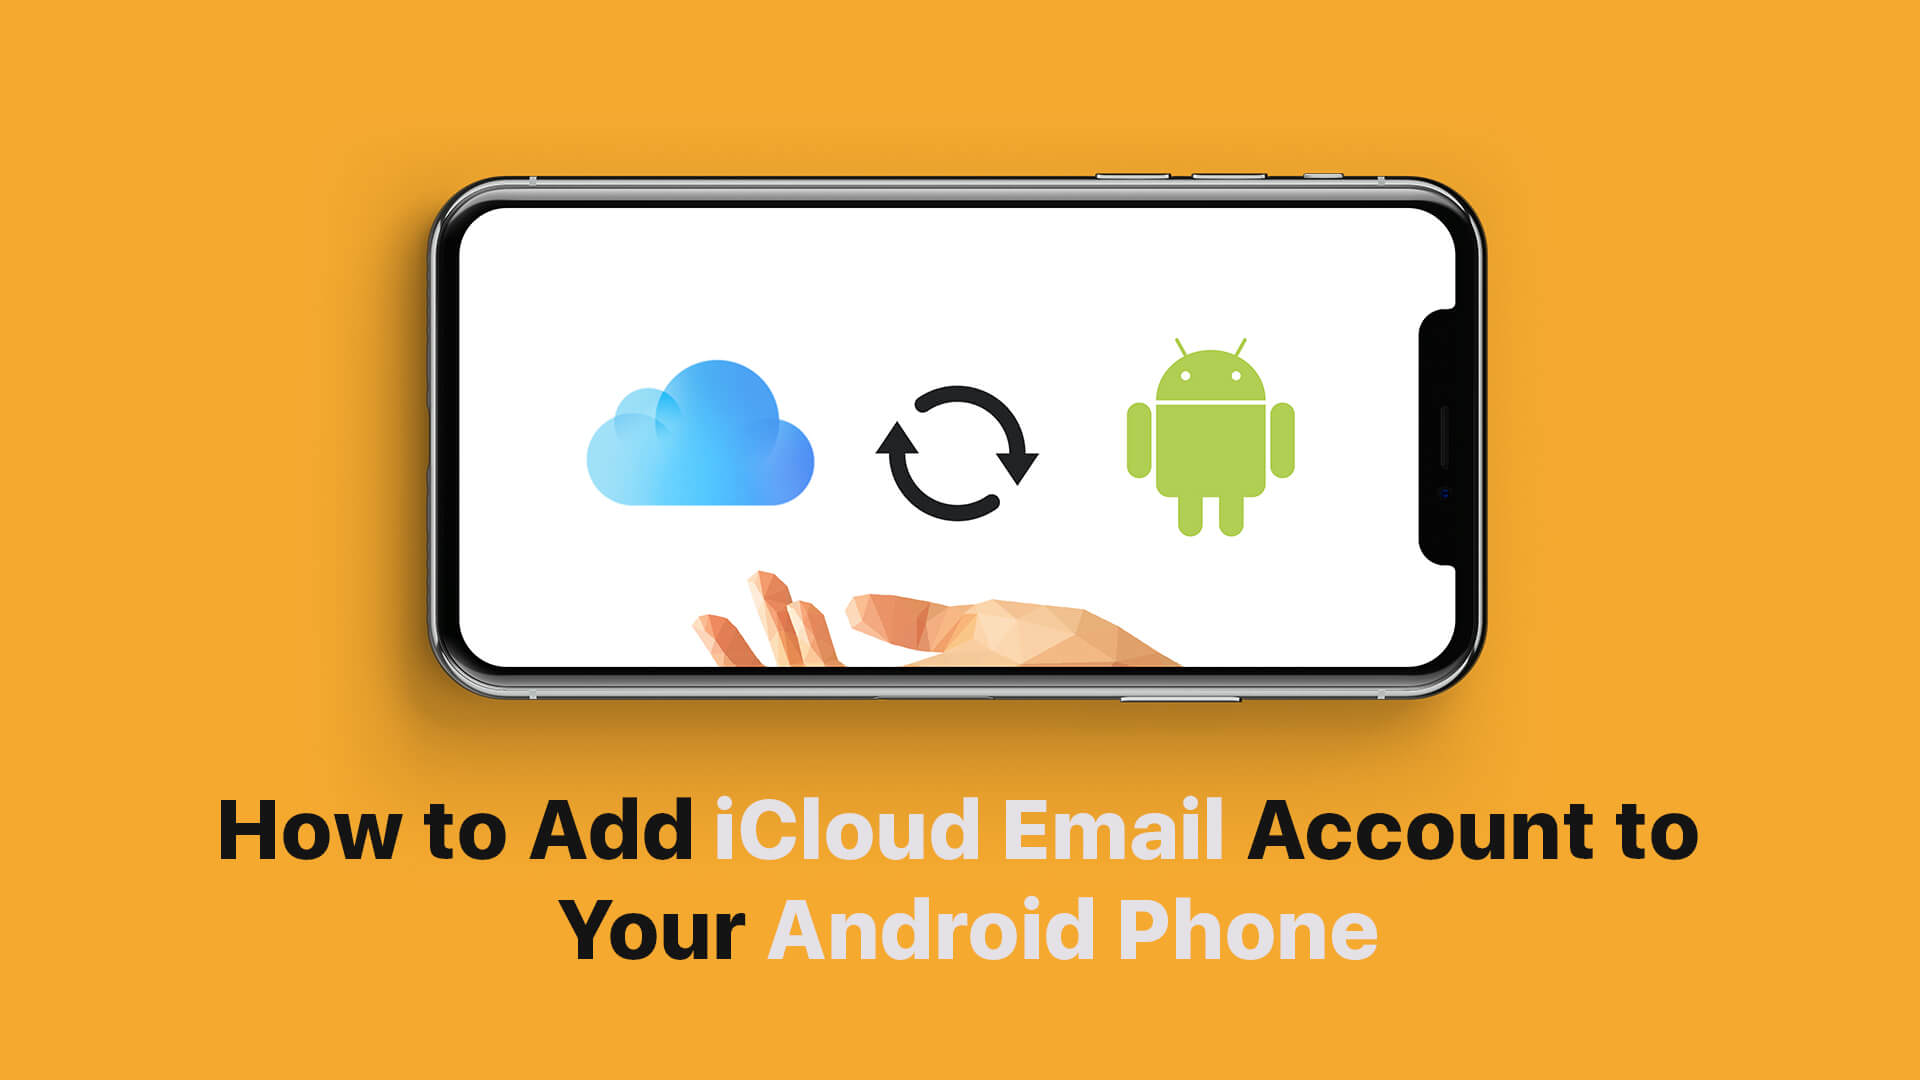 How to Setup iCloud Email Account on Android Phone